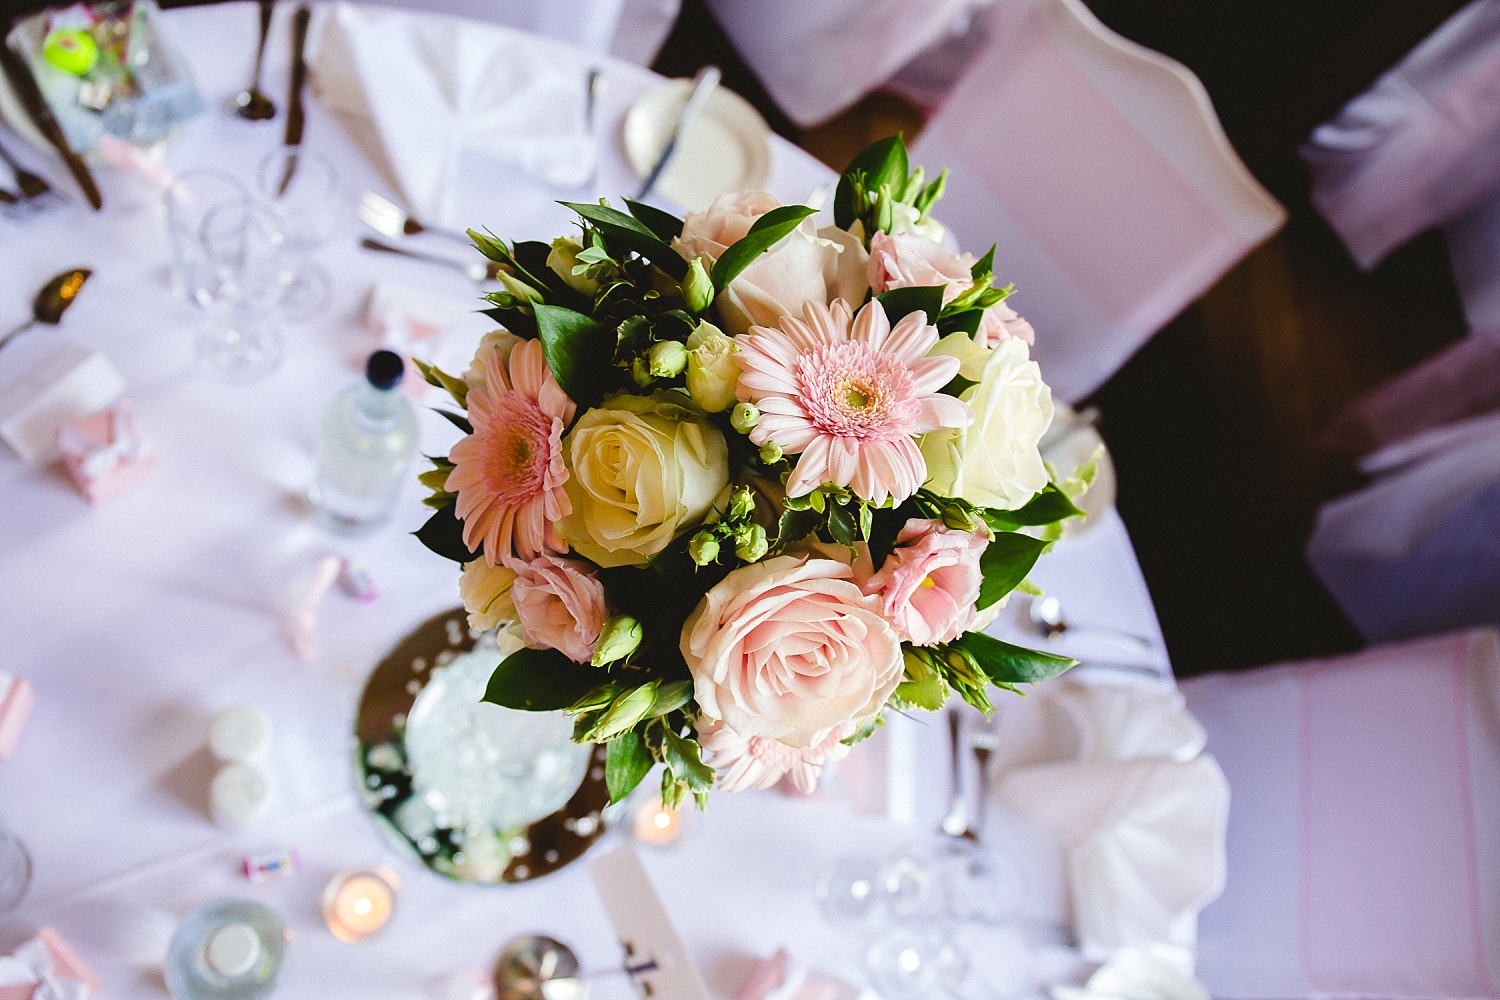 Gosfield Hall Wedding - Reception Room Table Decor